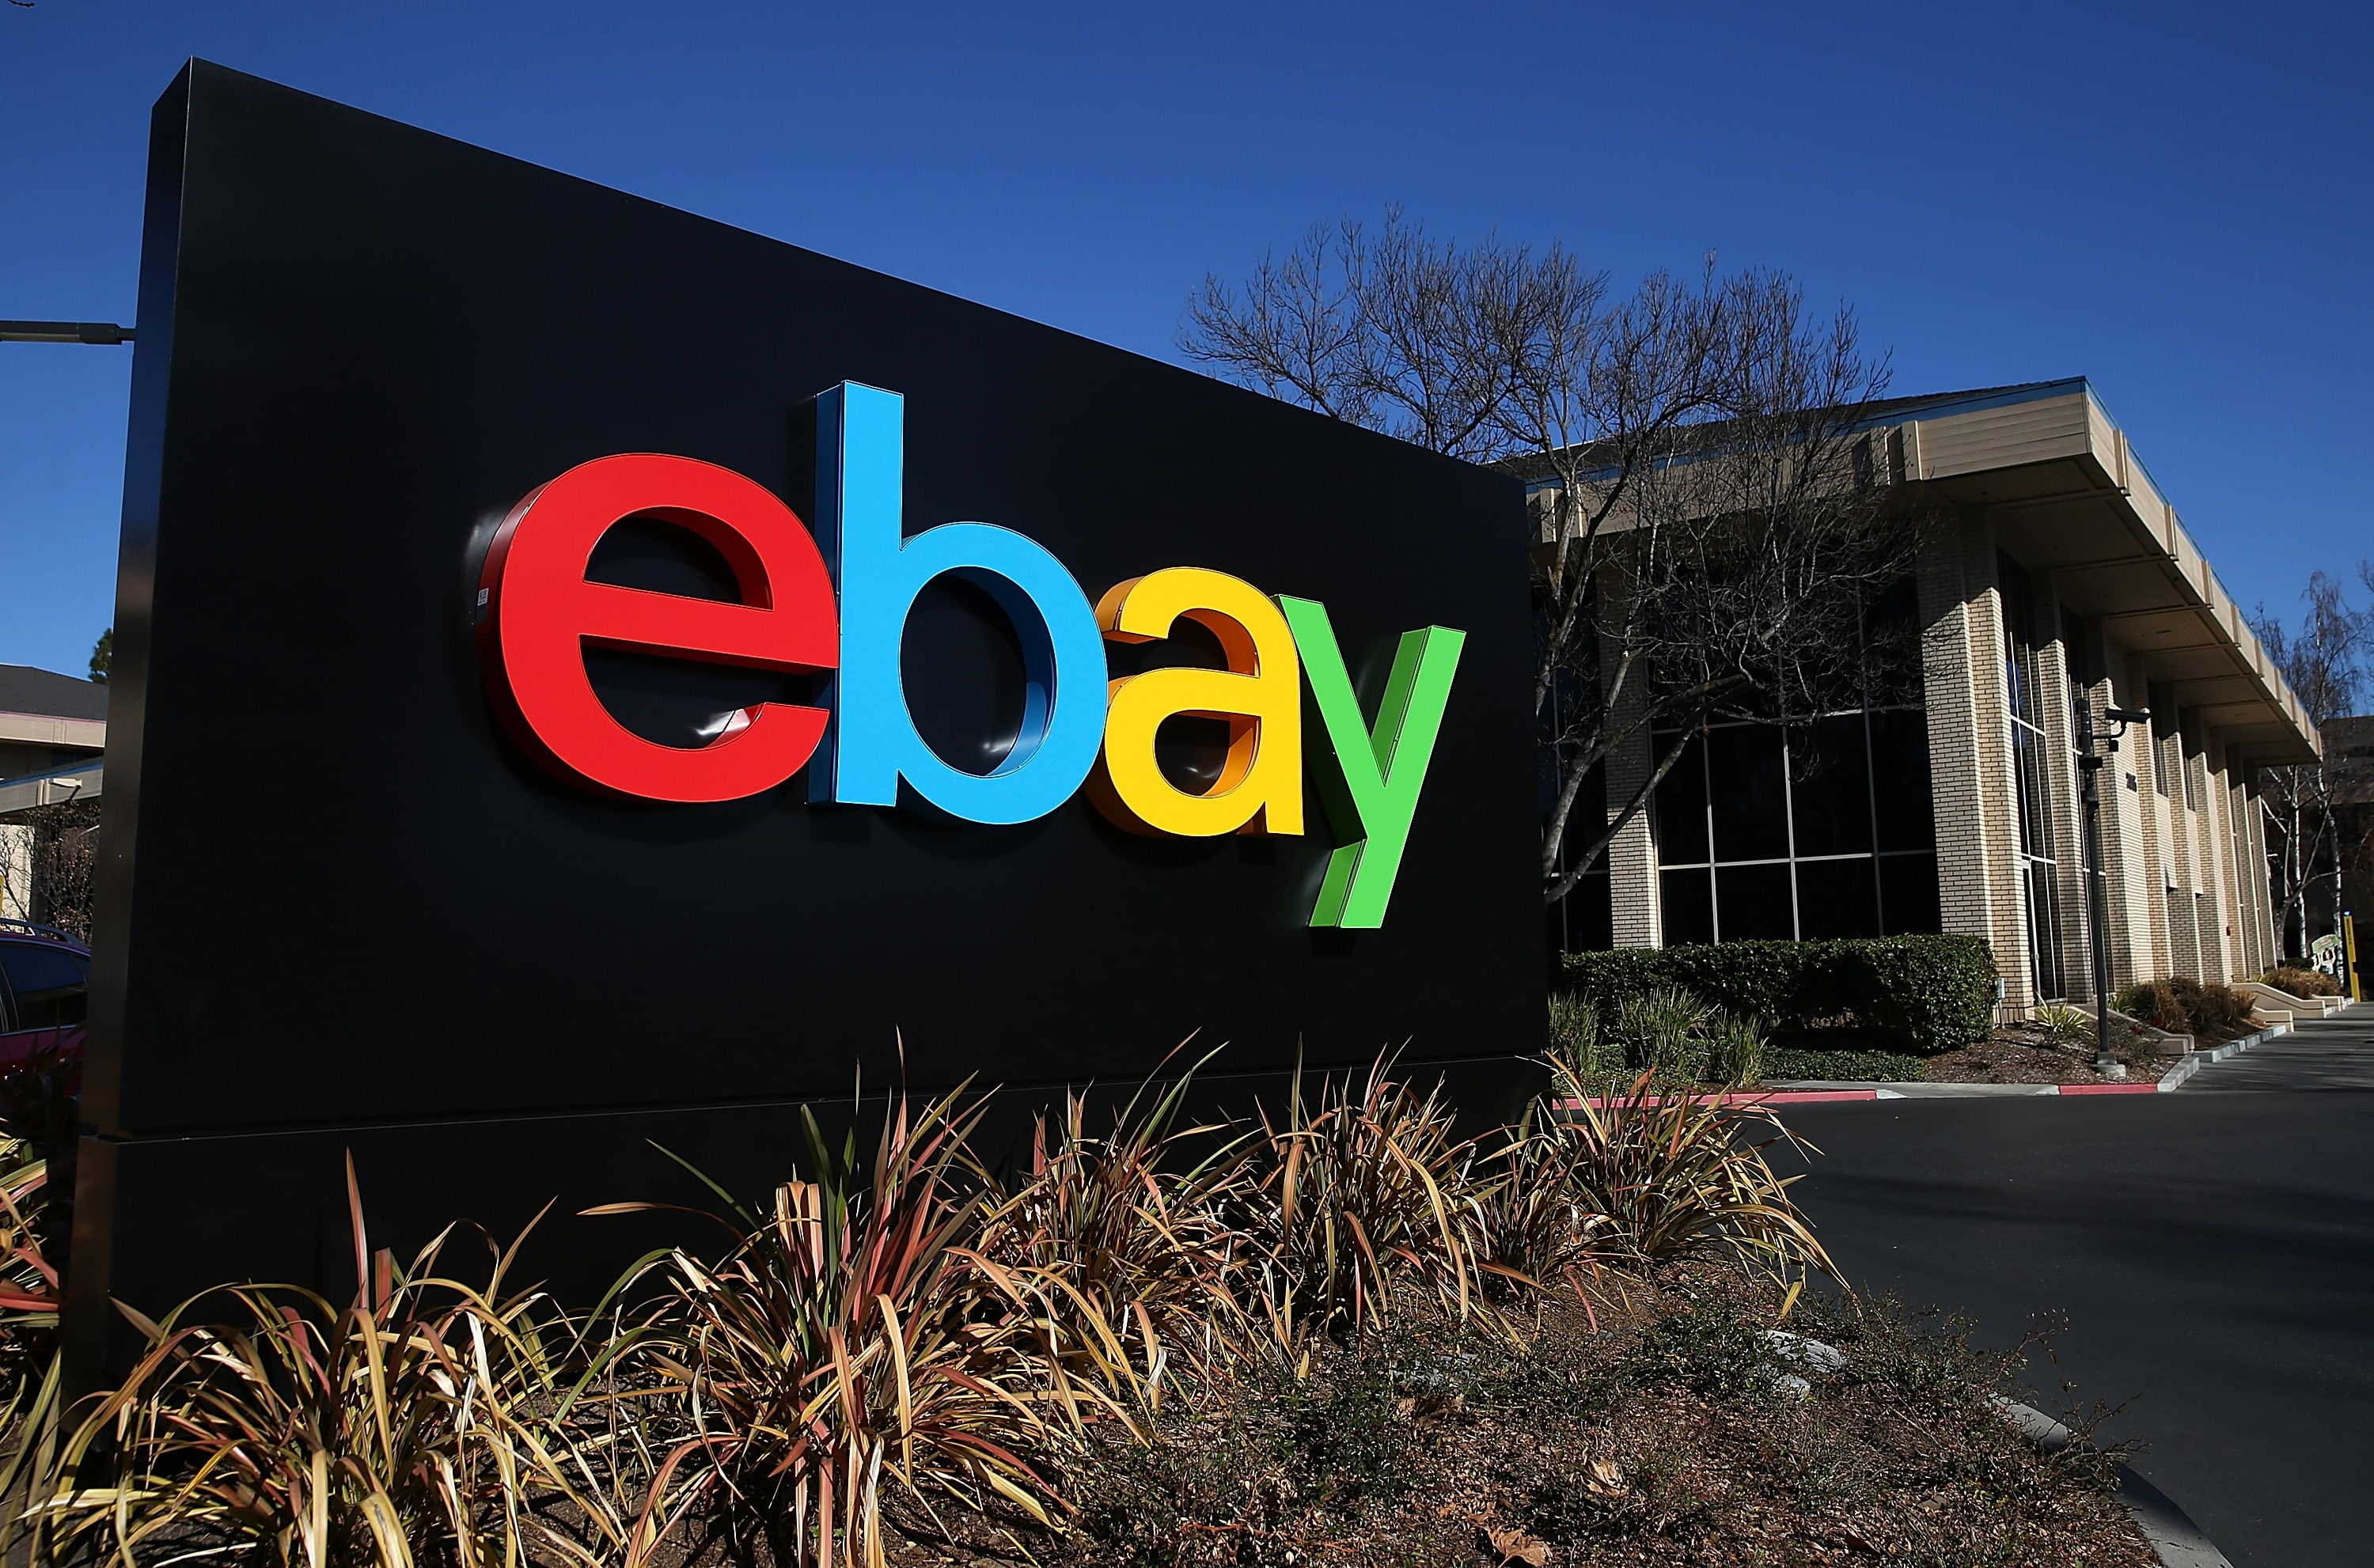 echo bay technologies ebay Ebay - download as open office file (odt), pdf file (pdf), text file (txt) or read online scribd is the world's largest social reading and publishing site.